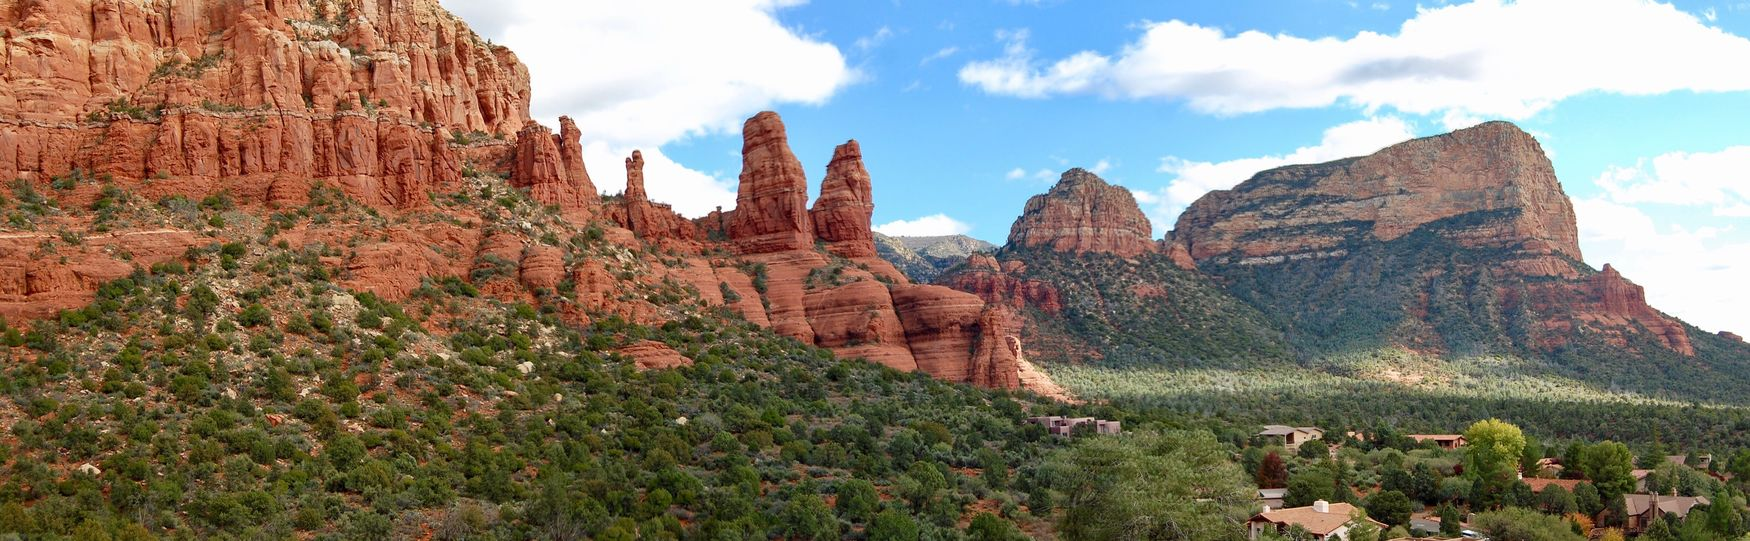 Nature Rock - Object Rock Formation Travel Destinations Beauty In Nature Geology Travel Physical Geography Scenics Tourism Sky Outdoors Day Tranquility Rock Hoodoo No People Panoramic View Panoramic Photography Panorama SEDONA ARIZONA